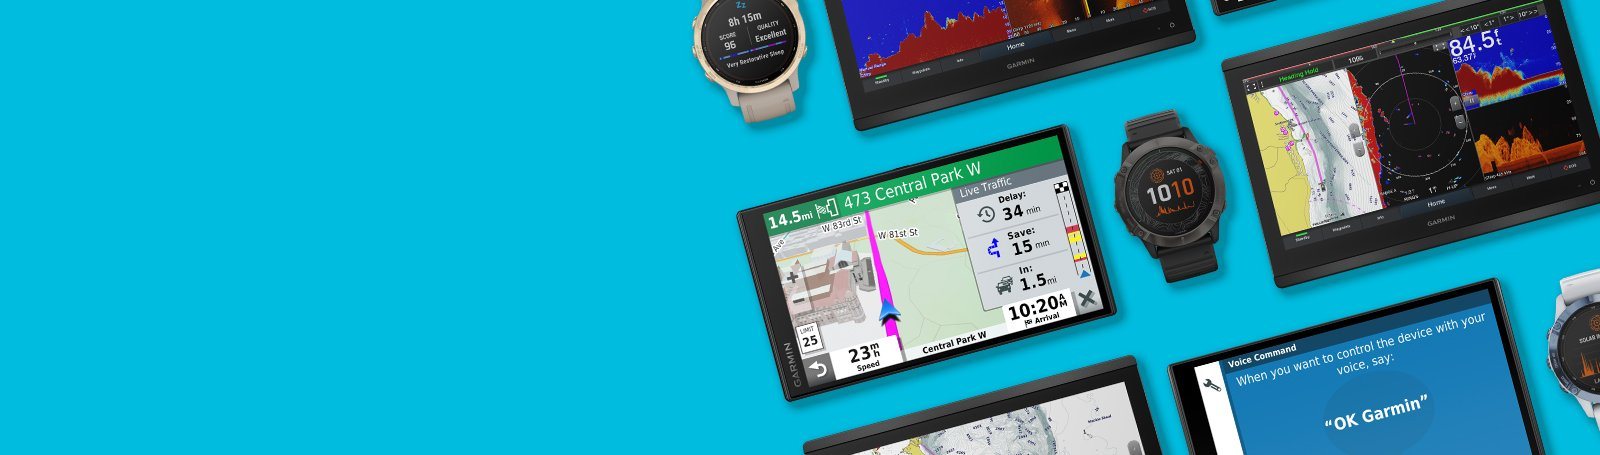 Garmin Connect For Pc Download